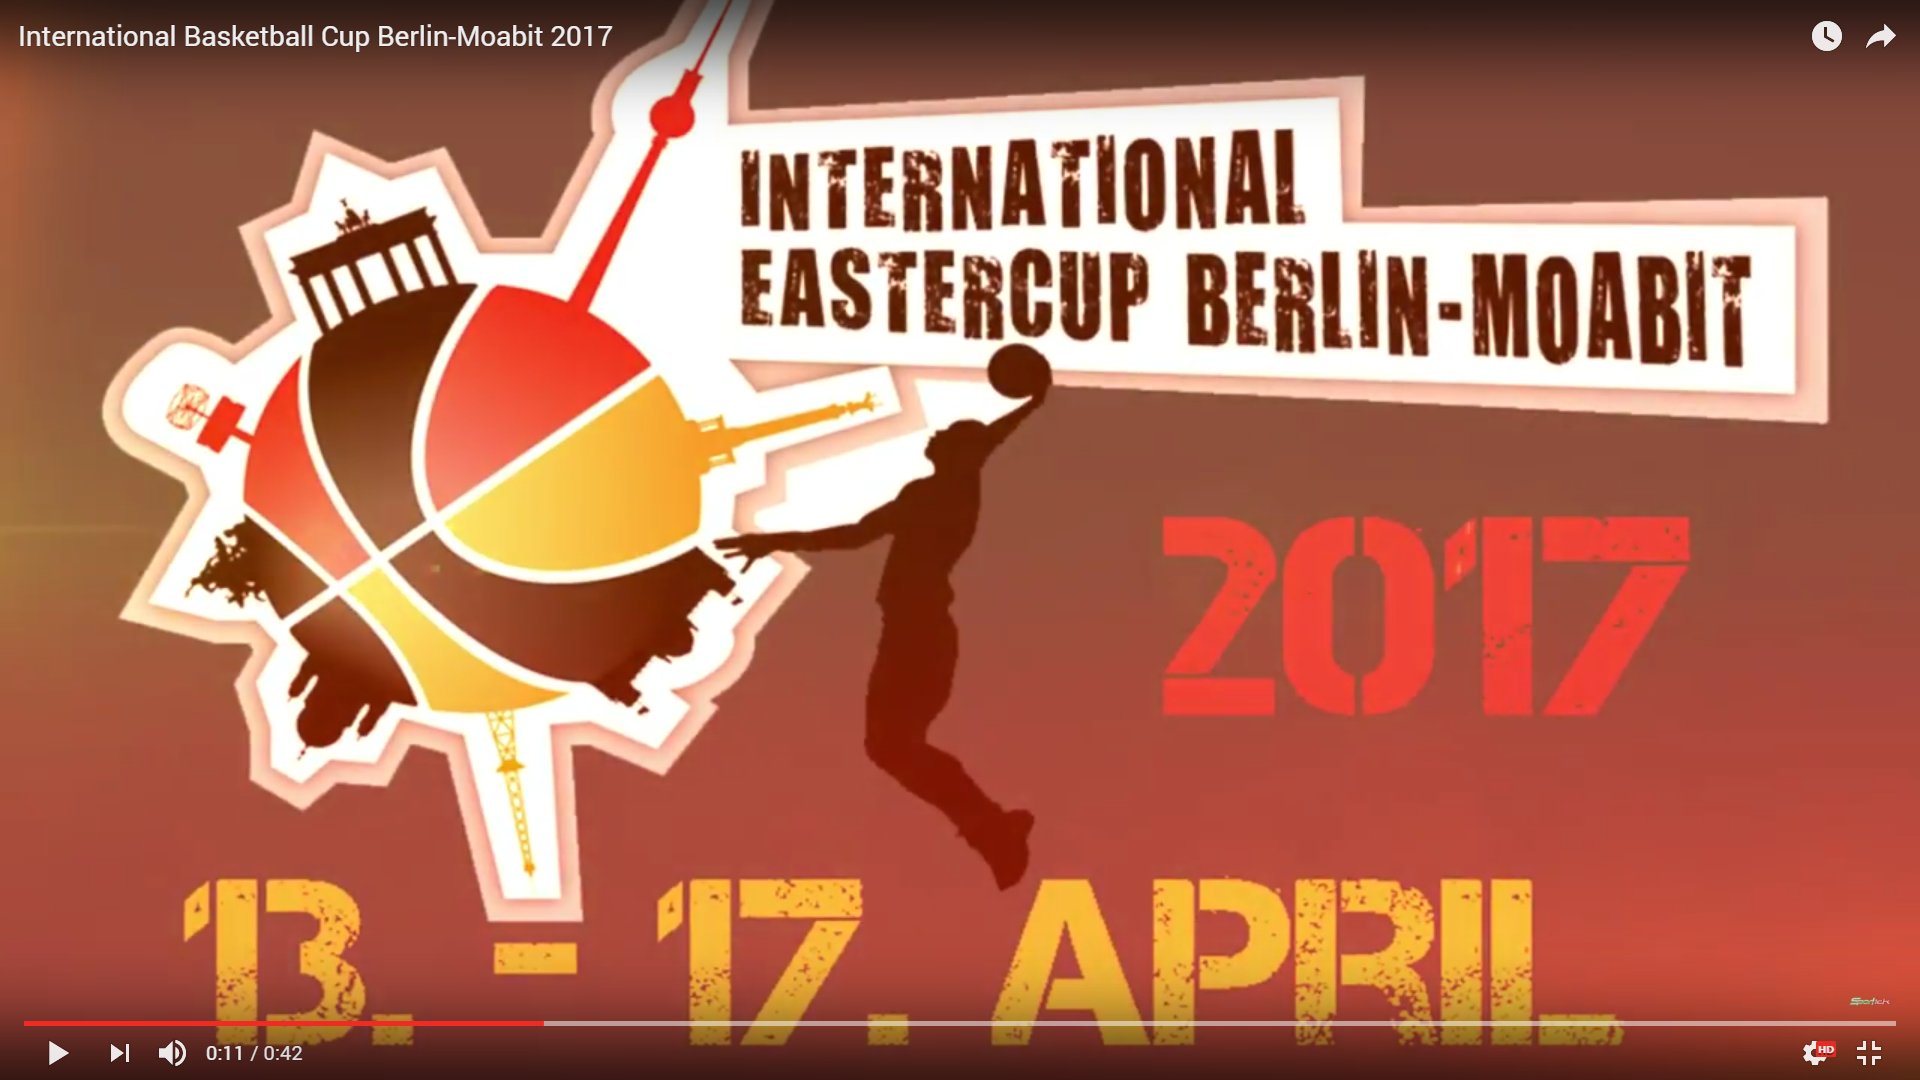 International Basketball Cup Berlin-Moabit 2017